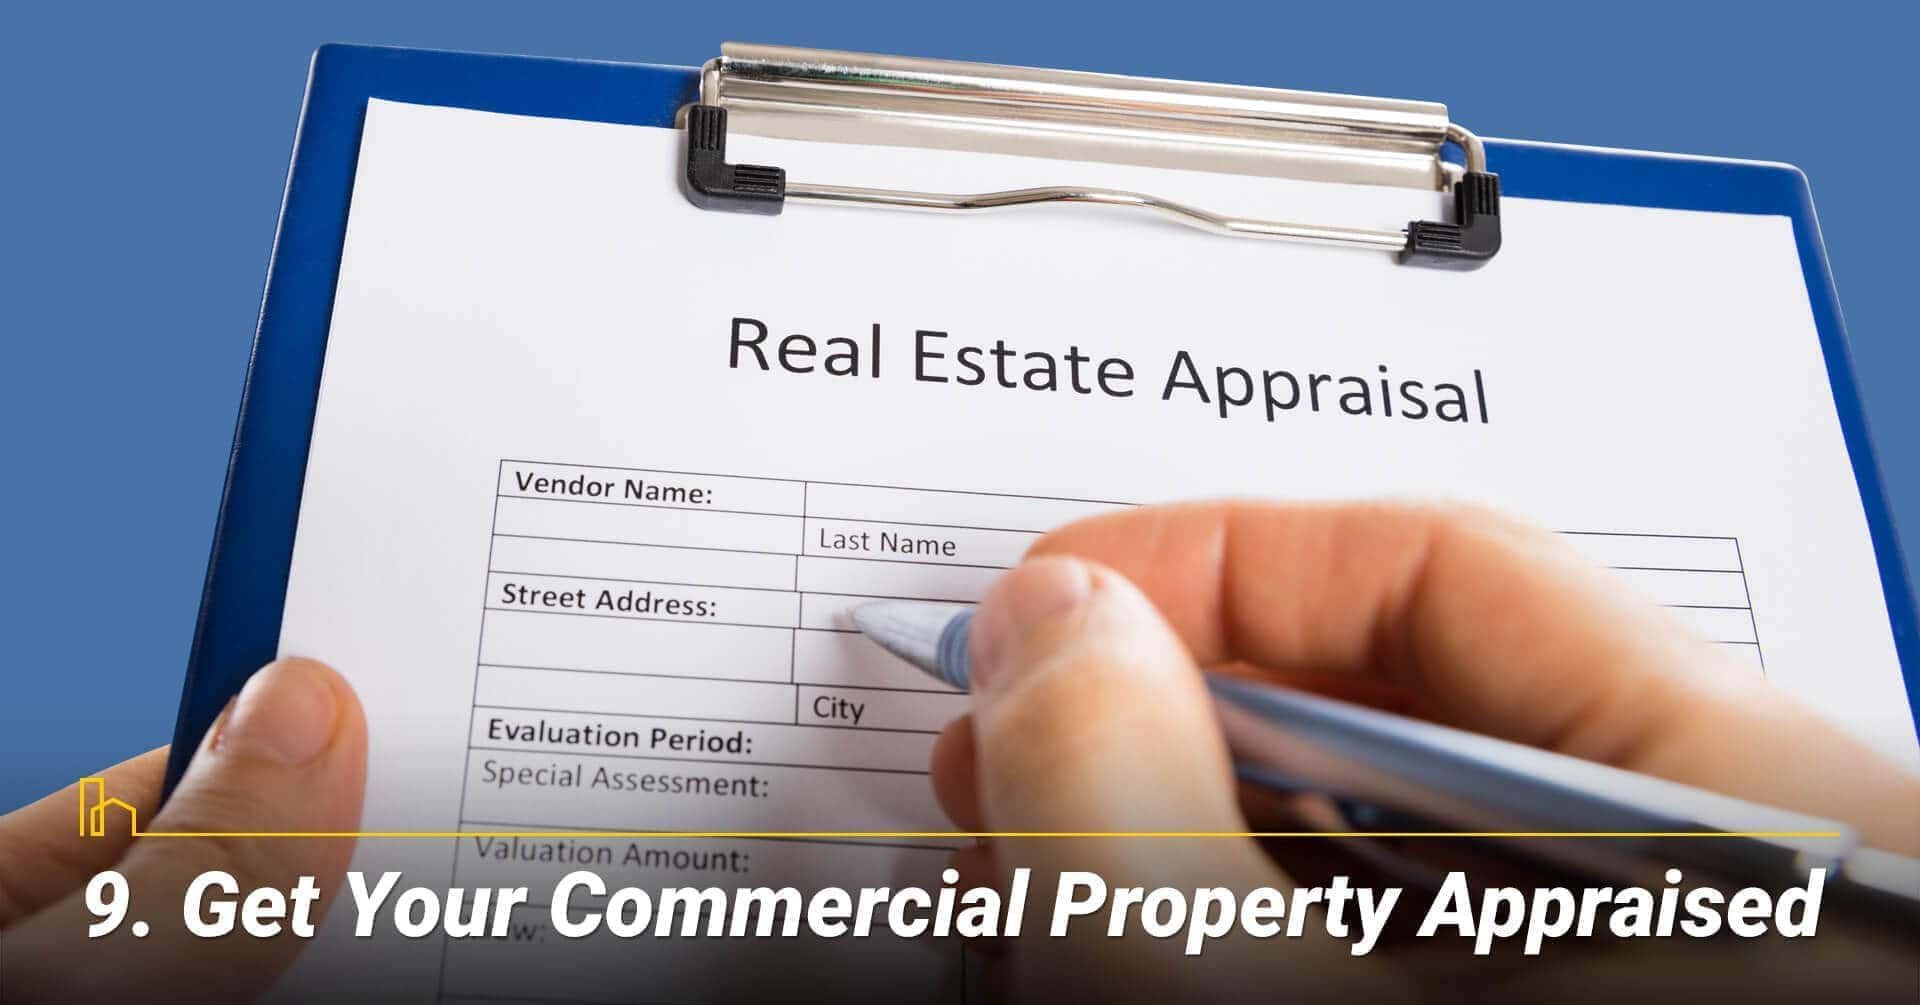 Get Your Commercial Property Appraised